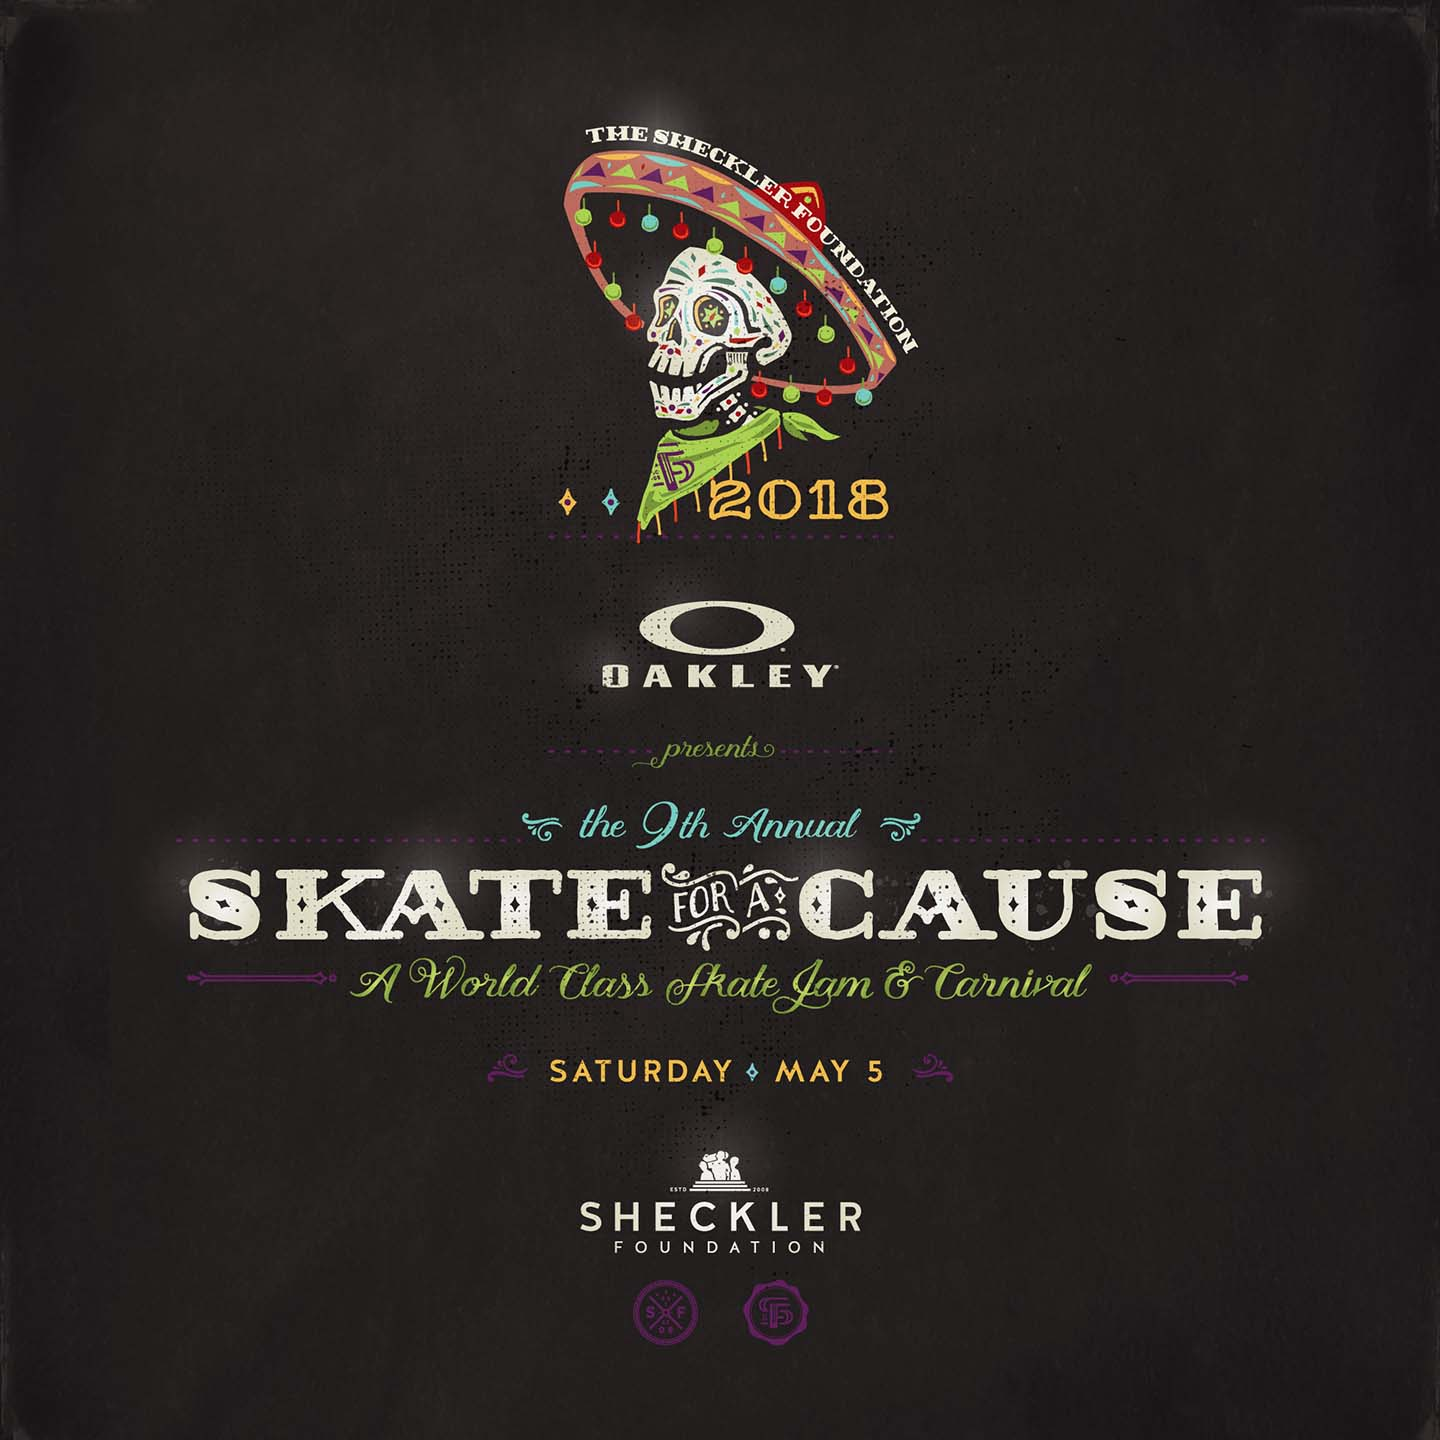 9th annual skate for a cause at etnies skatepark and with plan b skateboards